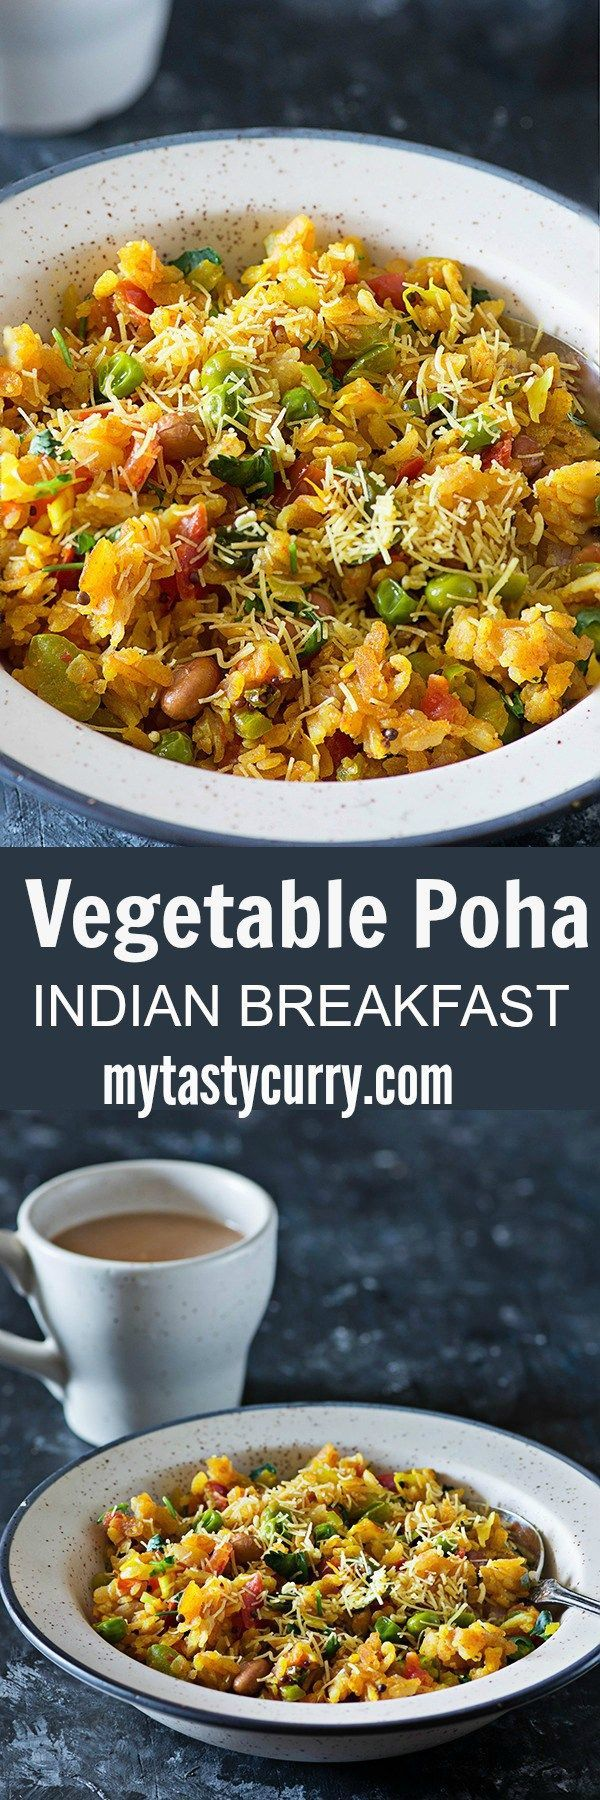 Vegetable Poha is popular and healthy Indian breakfast dish made with flattened rice and lots of vegetables. From as long as I can remember vegetable poha been a comfort breakfast or sometimes just a small portion of poha with evening tea was served as a part of Indian chai Nashta, especially during the weekends